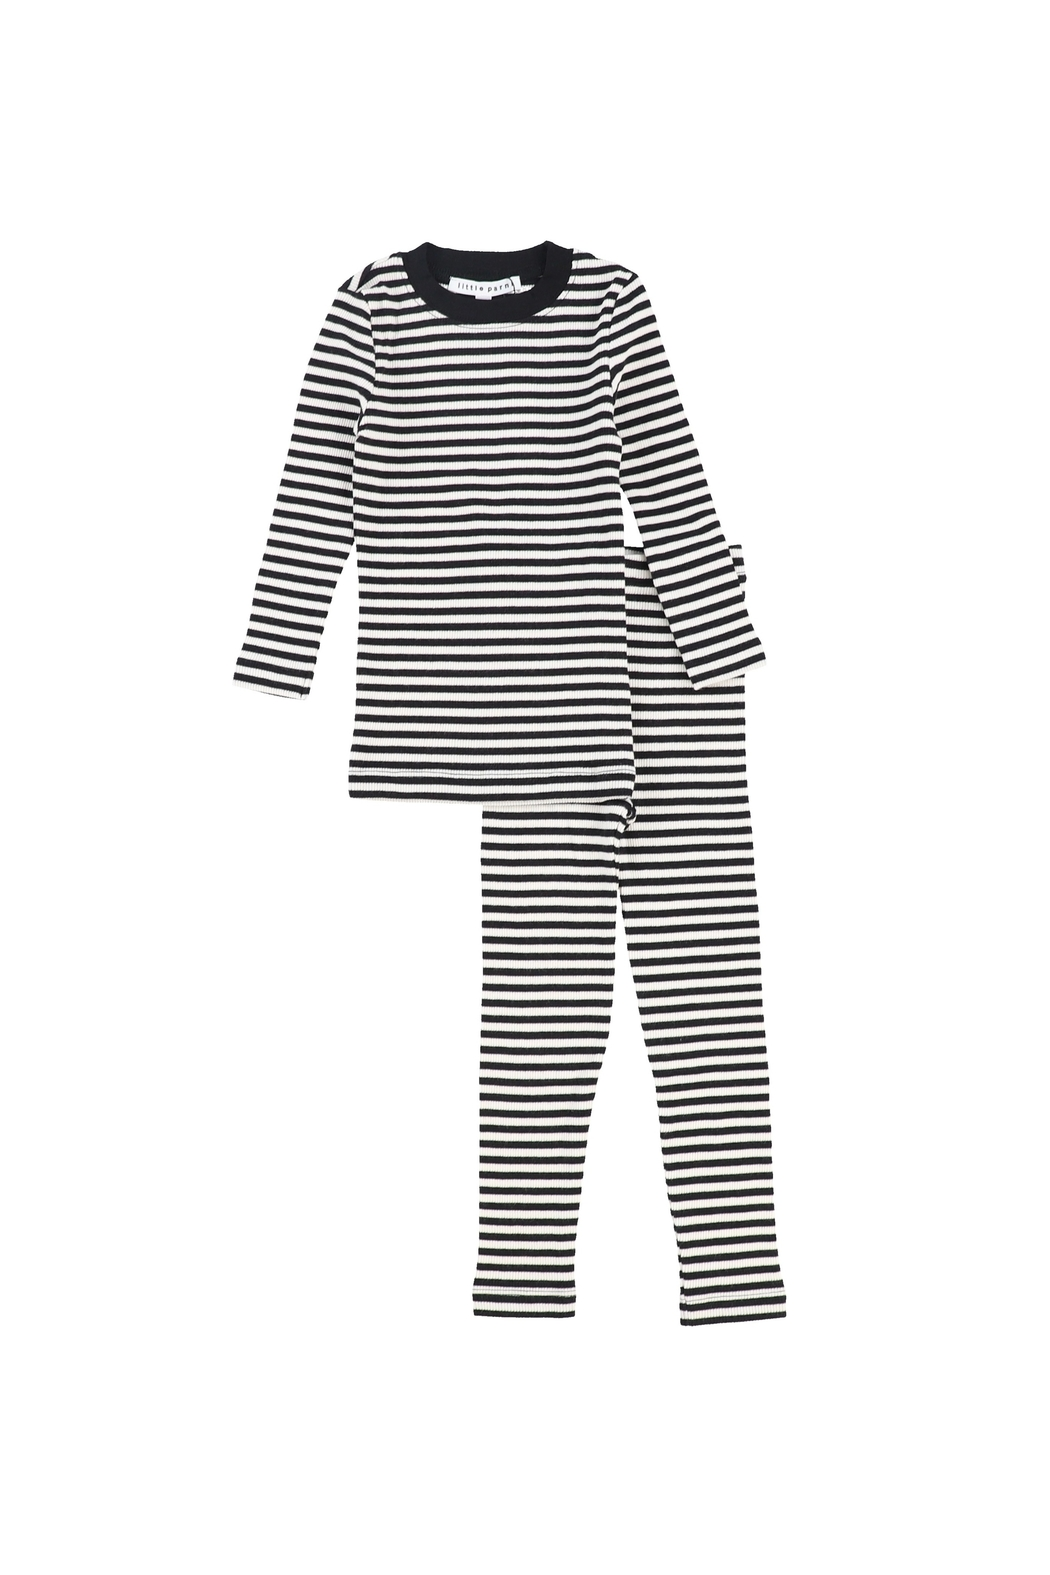 Little Parni  LITTLE PARNI RIBBED KNIT PAJAMAS - Front Cropped Image